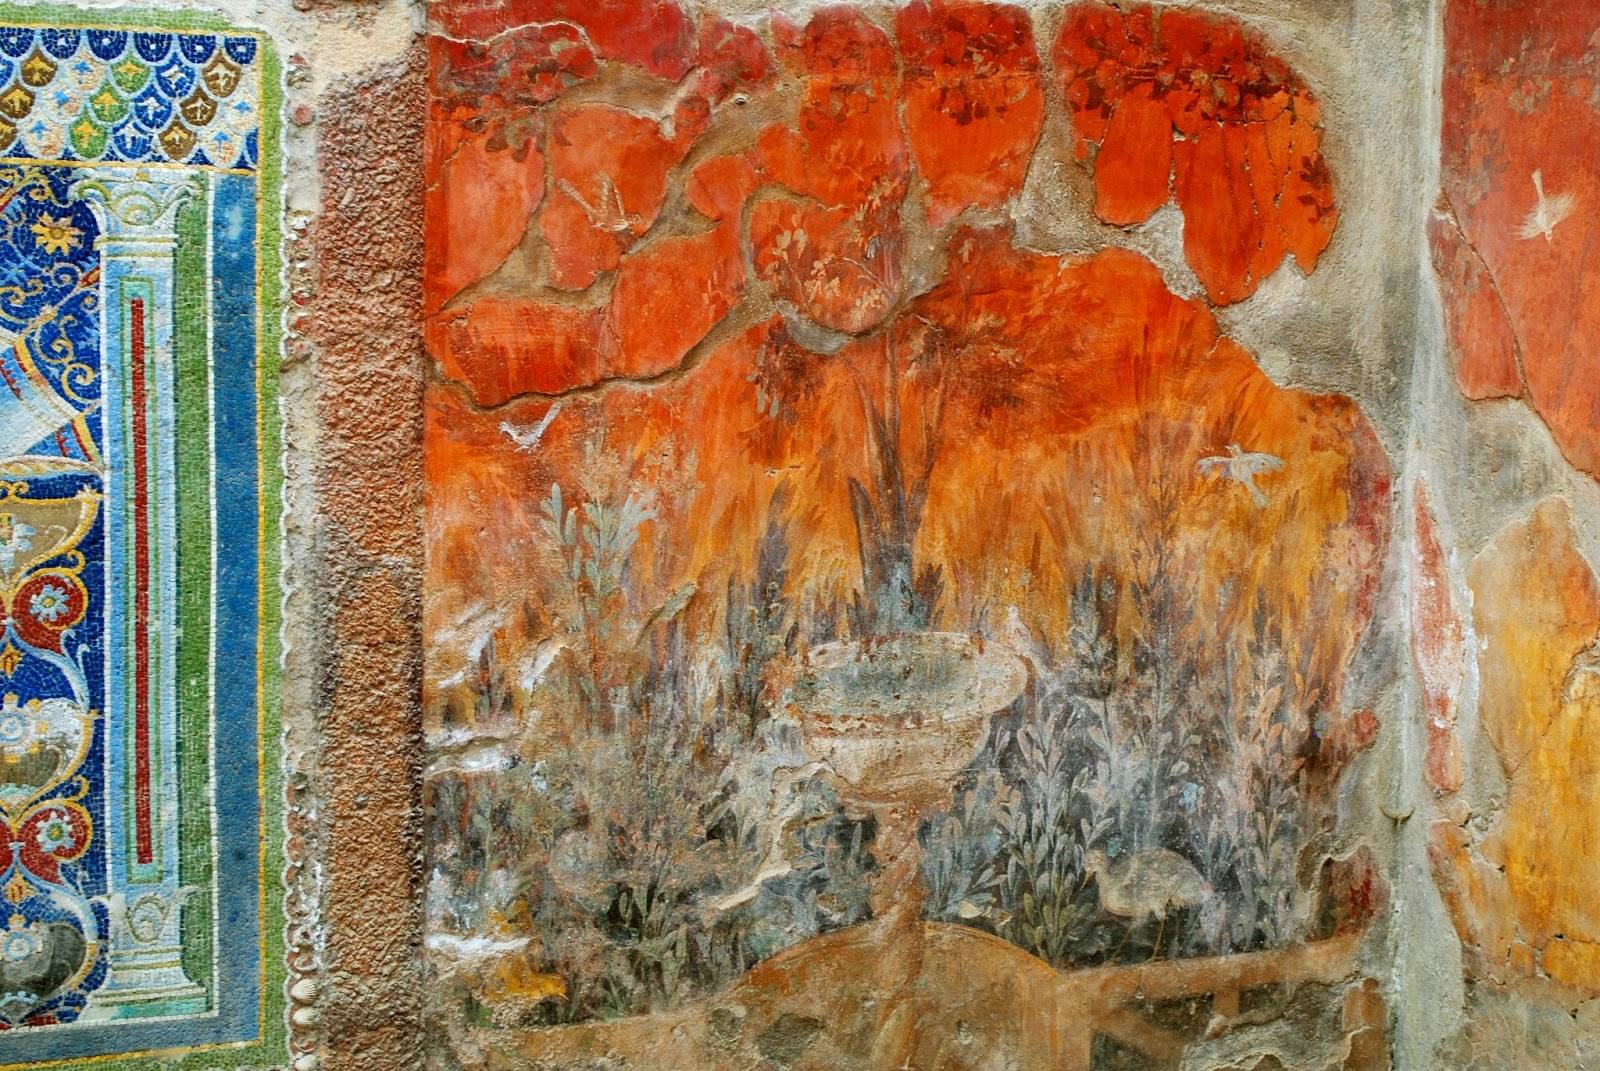 Mosaics and Frescoes in Herculaneum in Italy